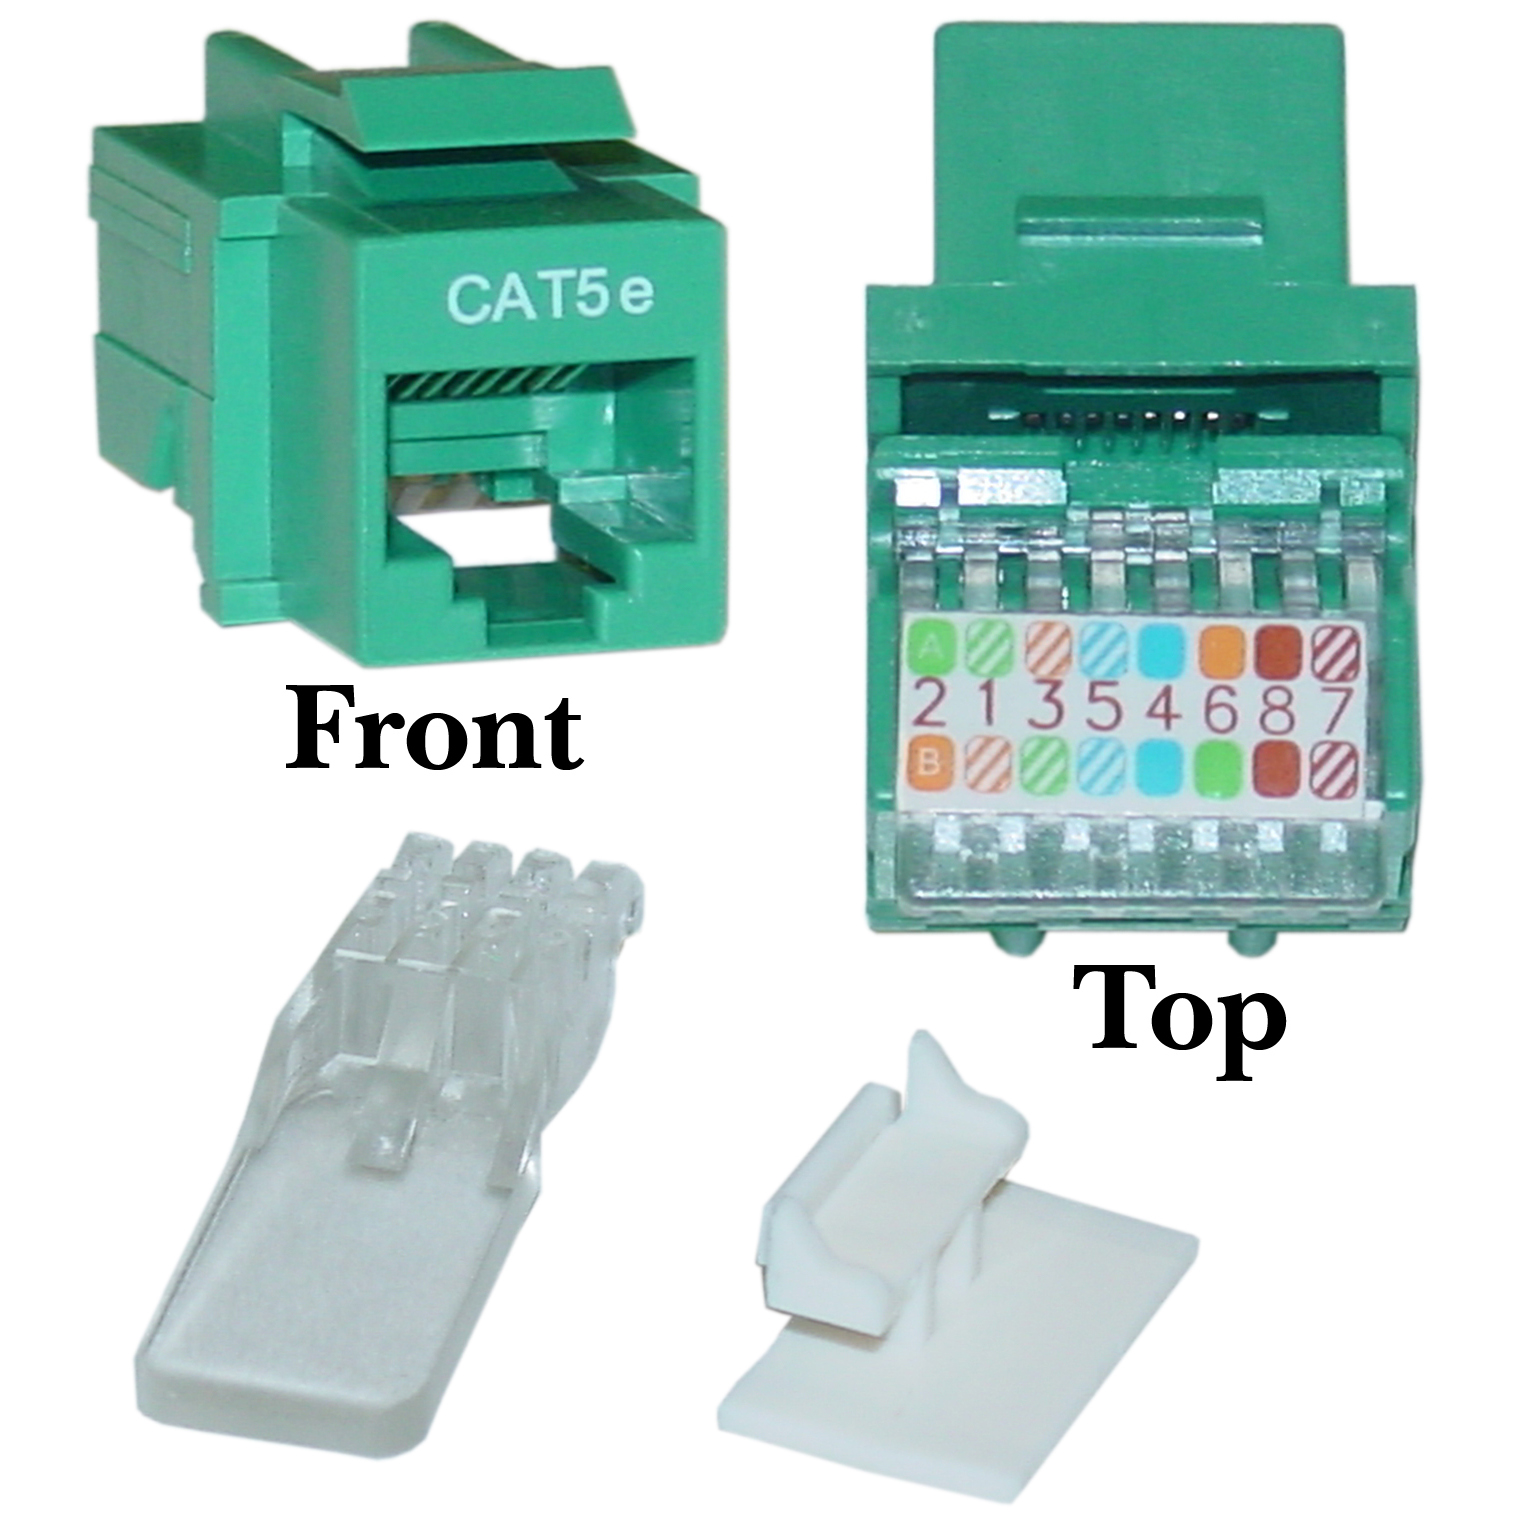 cat5e wall jack wiring diagram rv water tank green rj45 keystone toolless